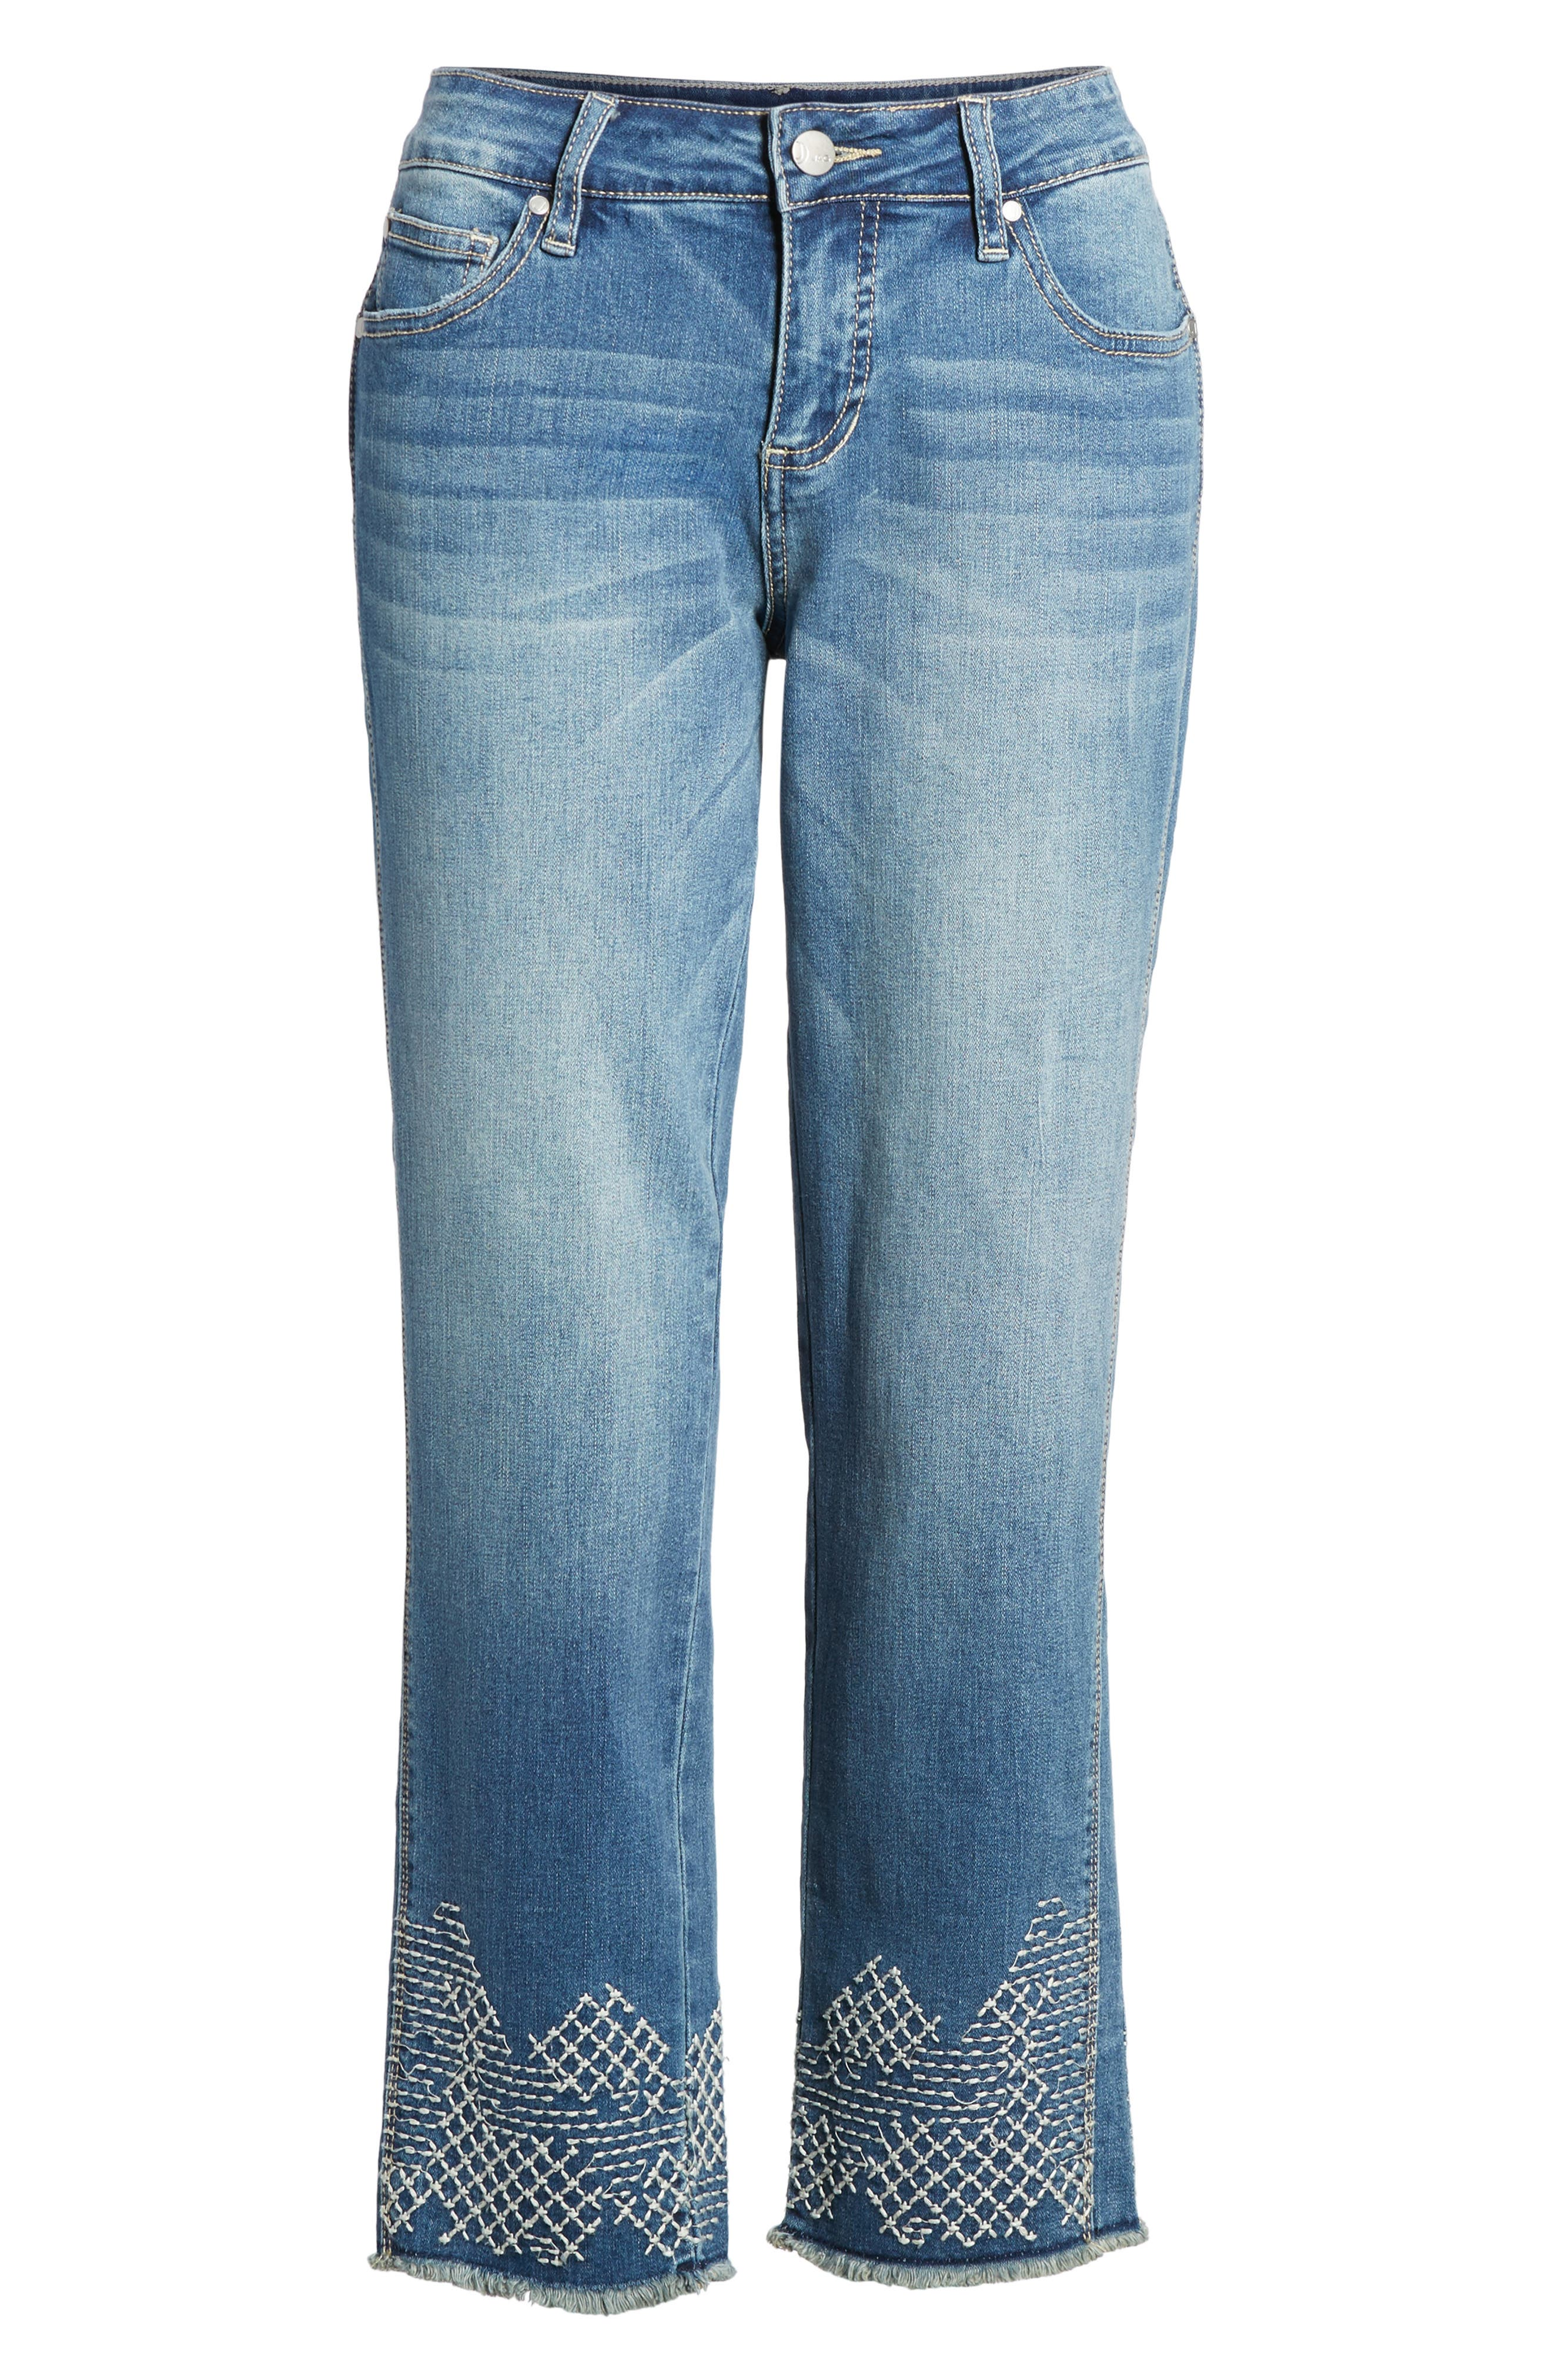 Long Straight Ankle Jeans,                             Alternate thumbnail 6, color,                             420